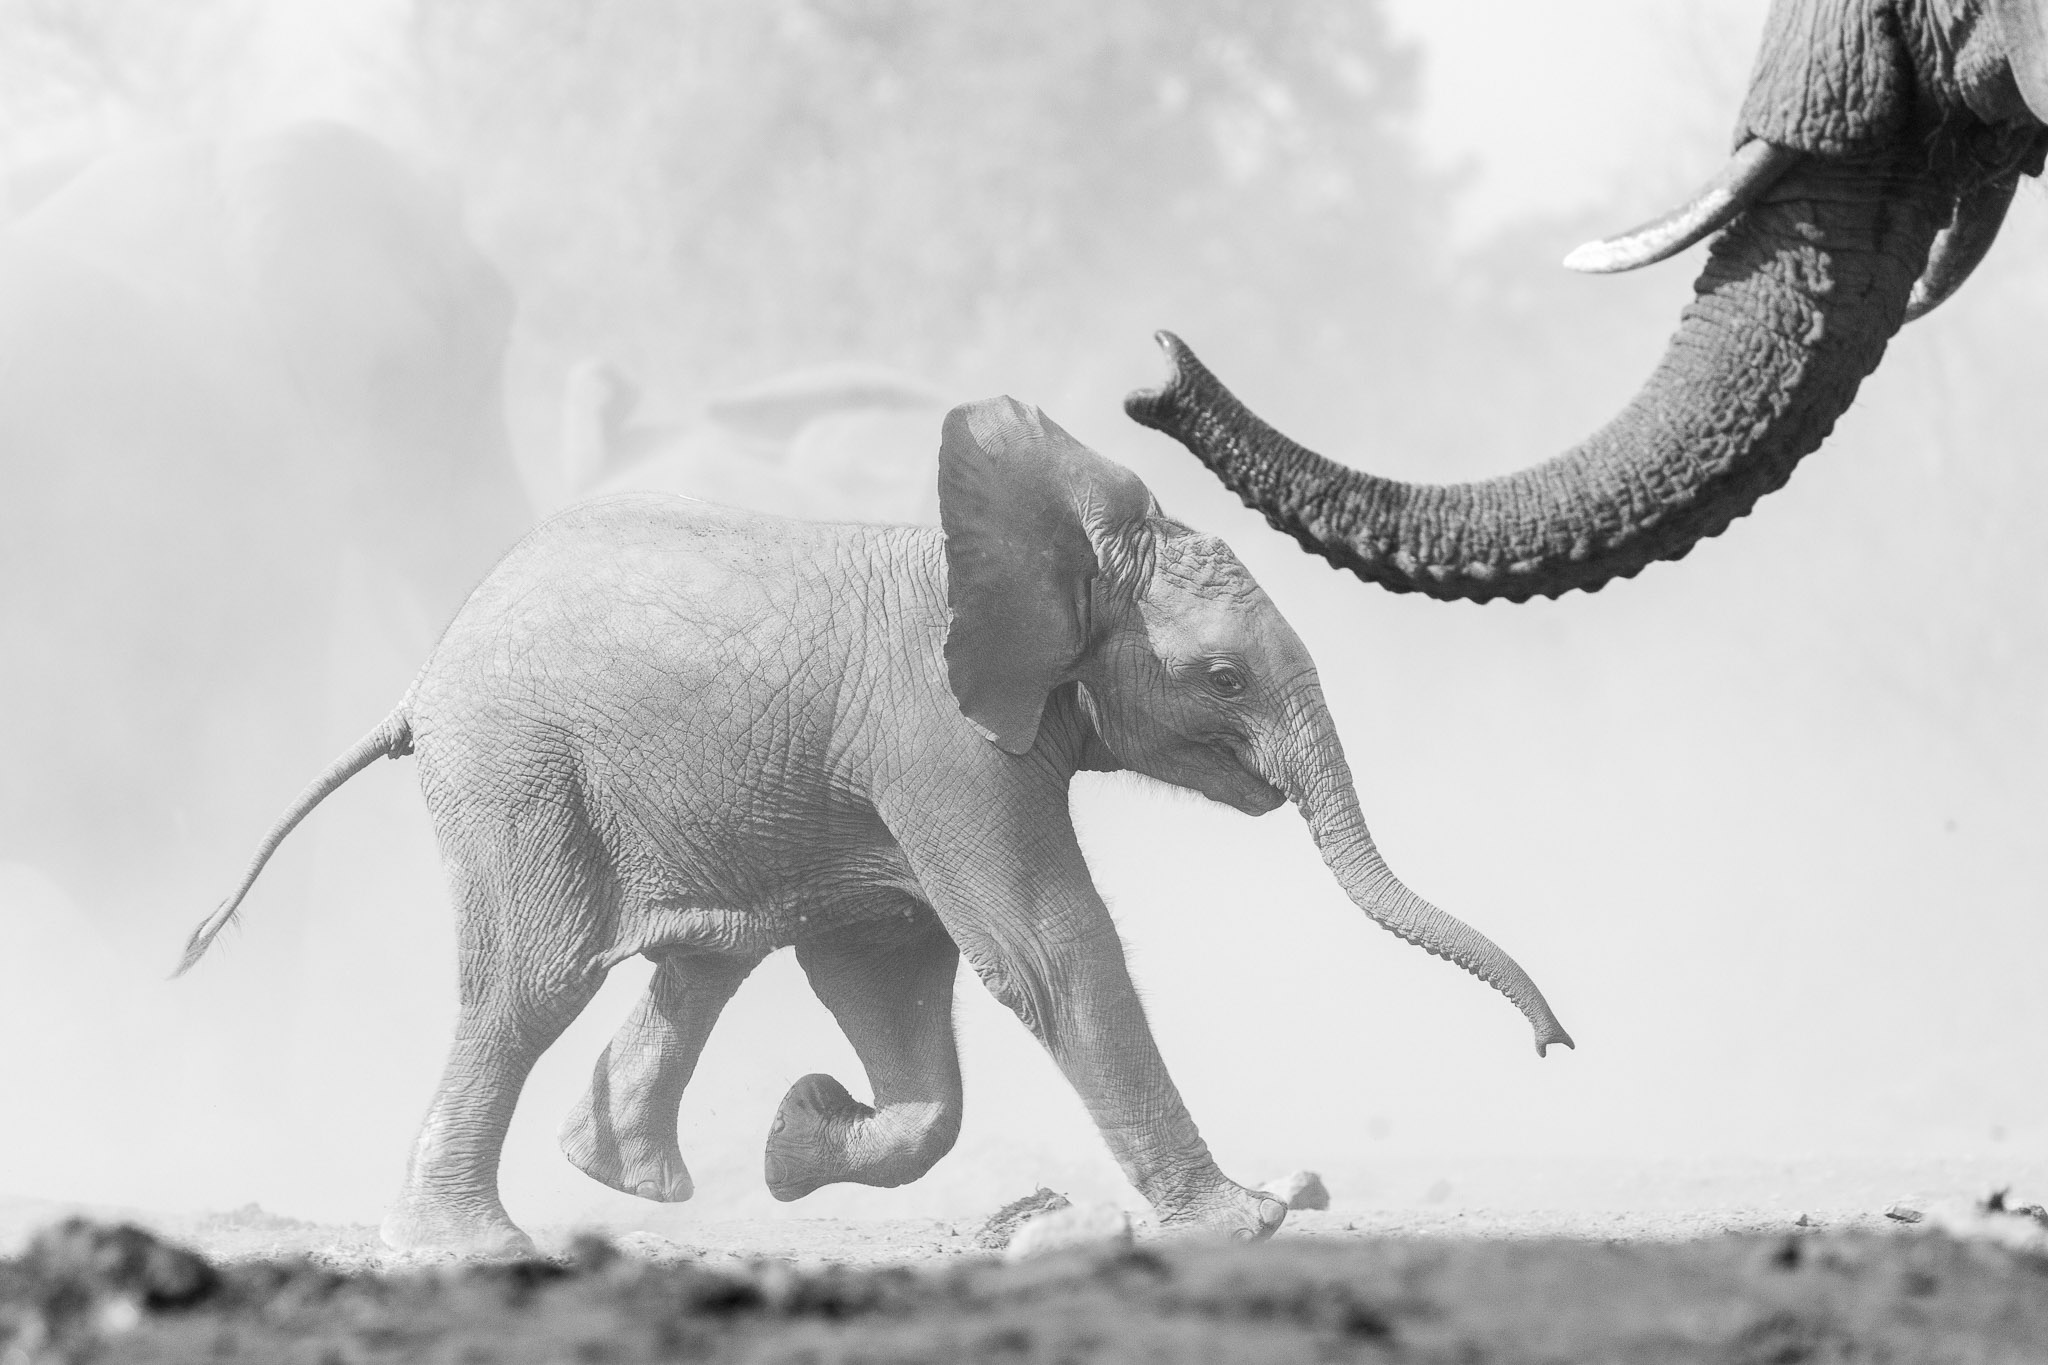 Elephant calf running in black and white